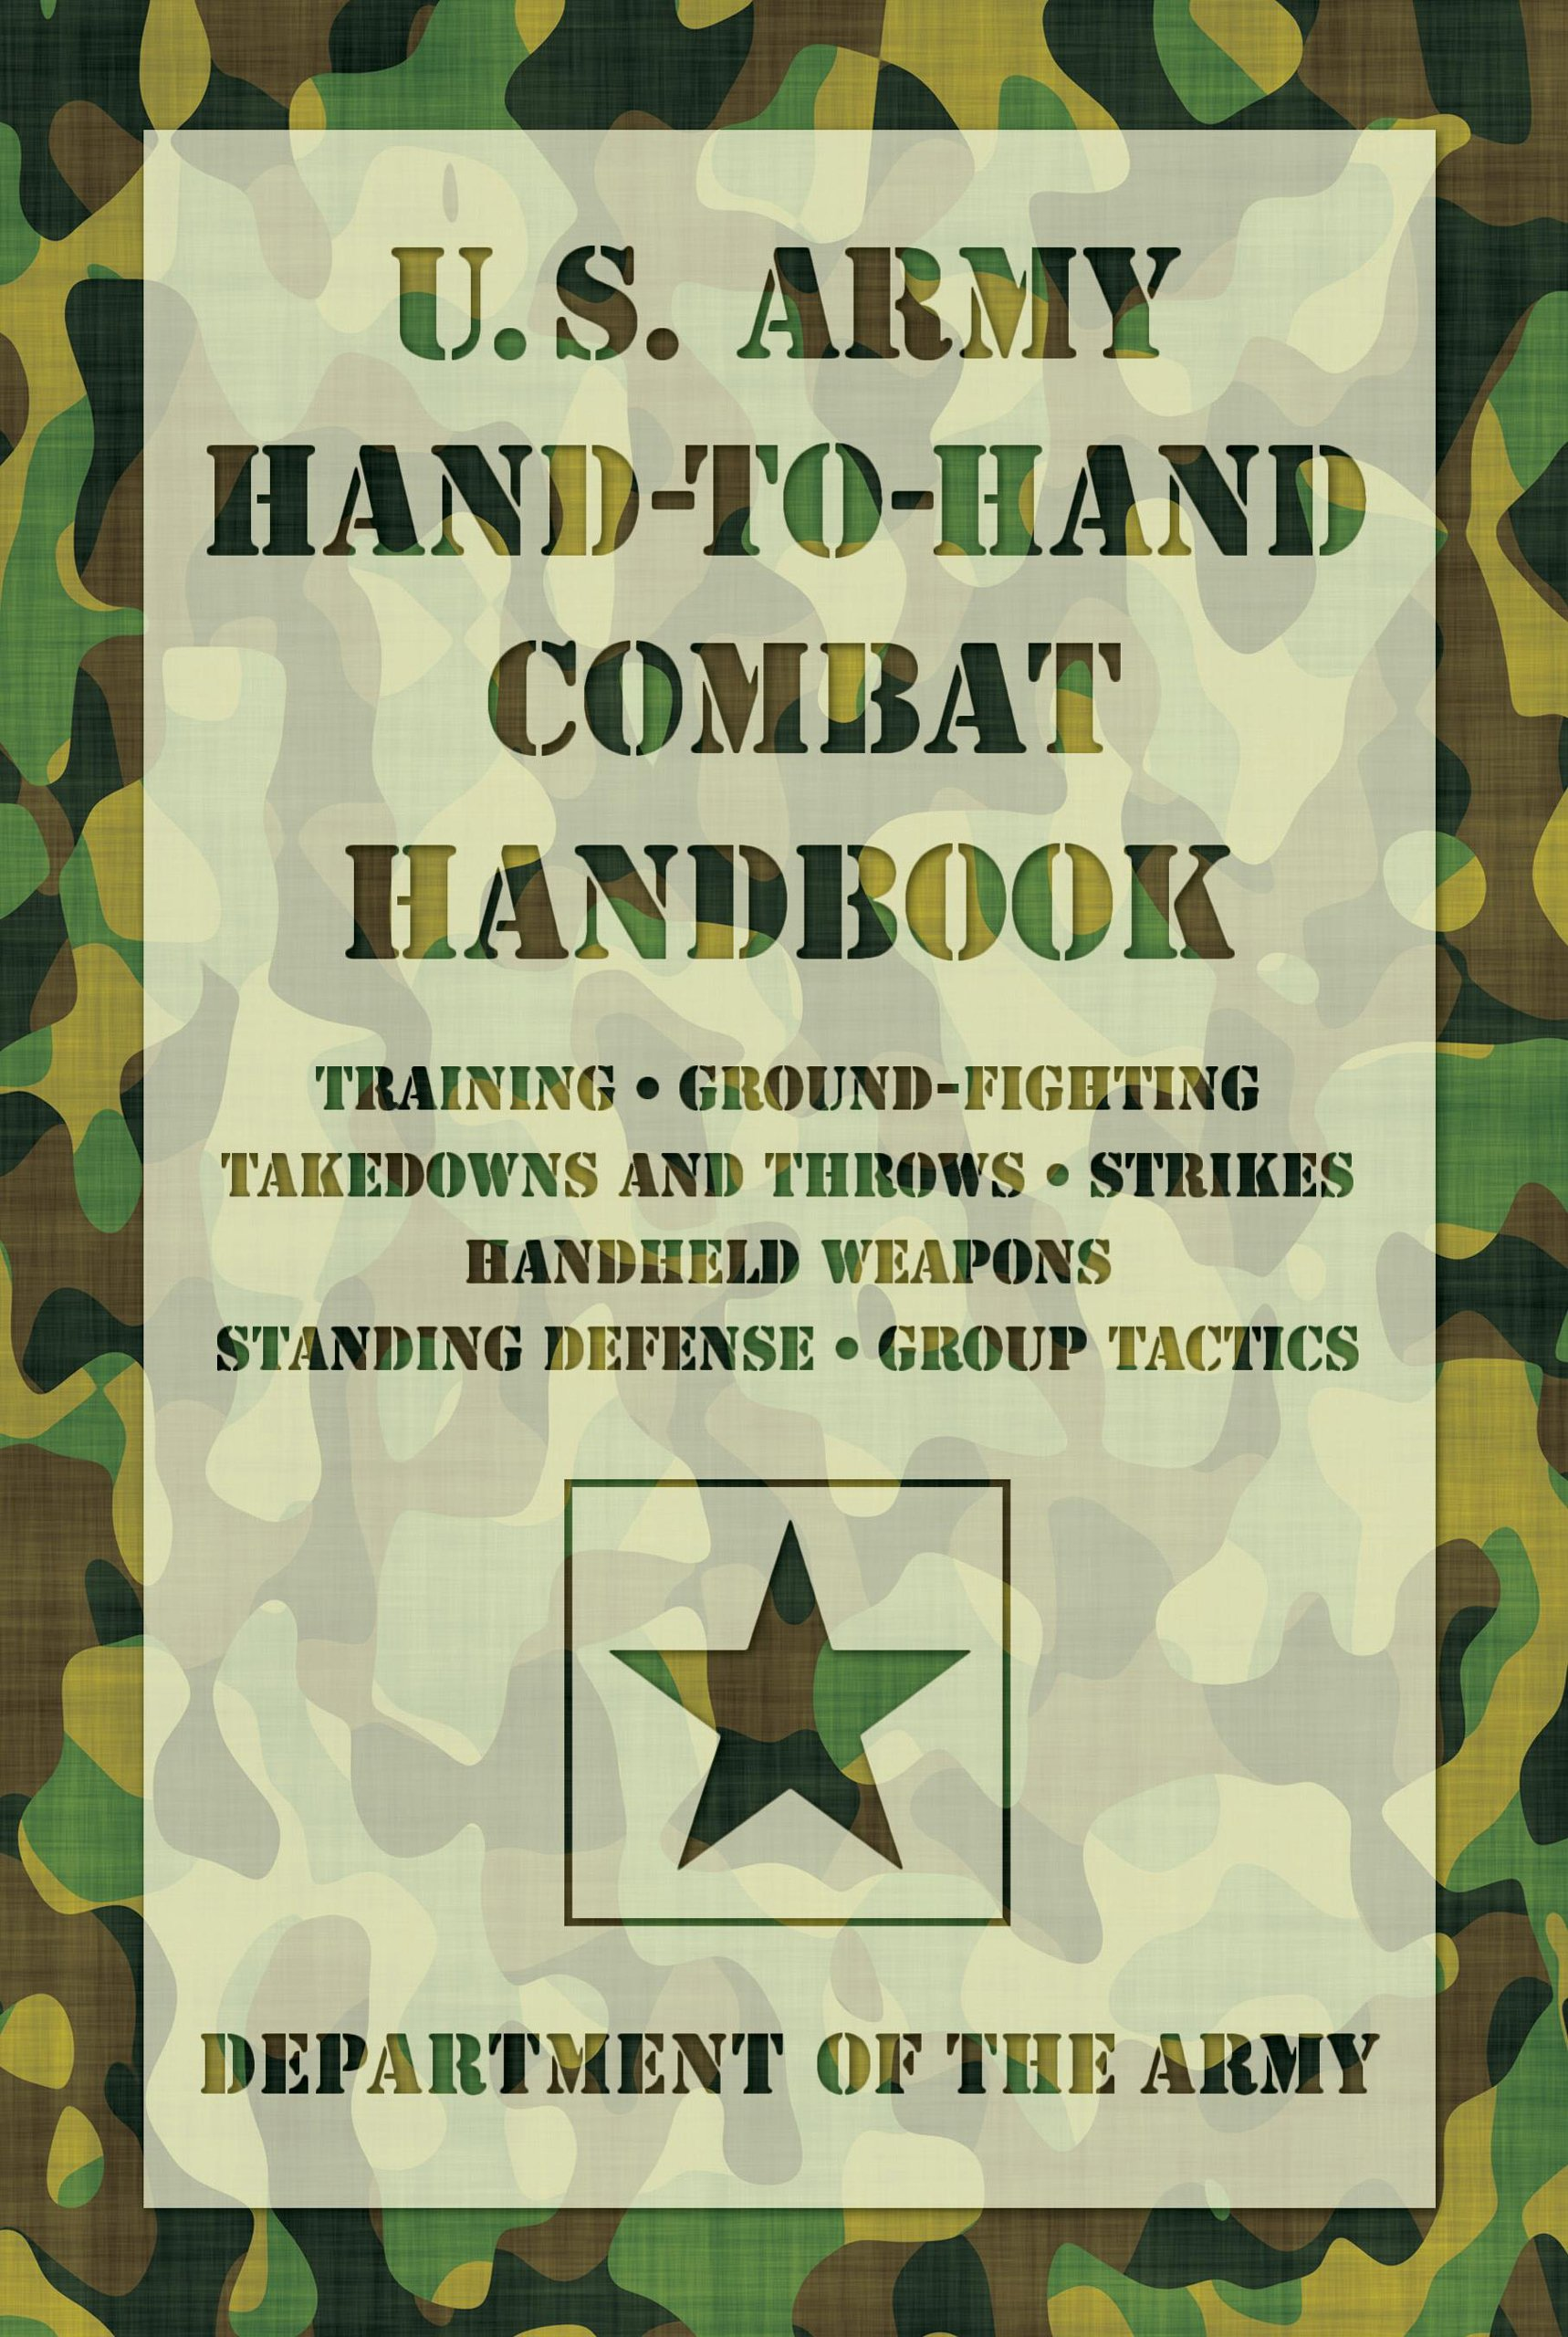 U.S. Army Hand-to-Hand Combat Handbook: Training, Ground-Fighting, Takedowns And Throws: Strikes, Handheld Weapons, Standing Defense, Group Tactics ebook